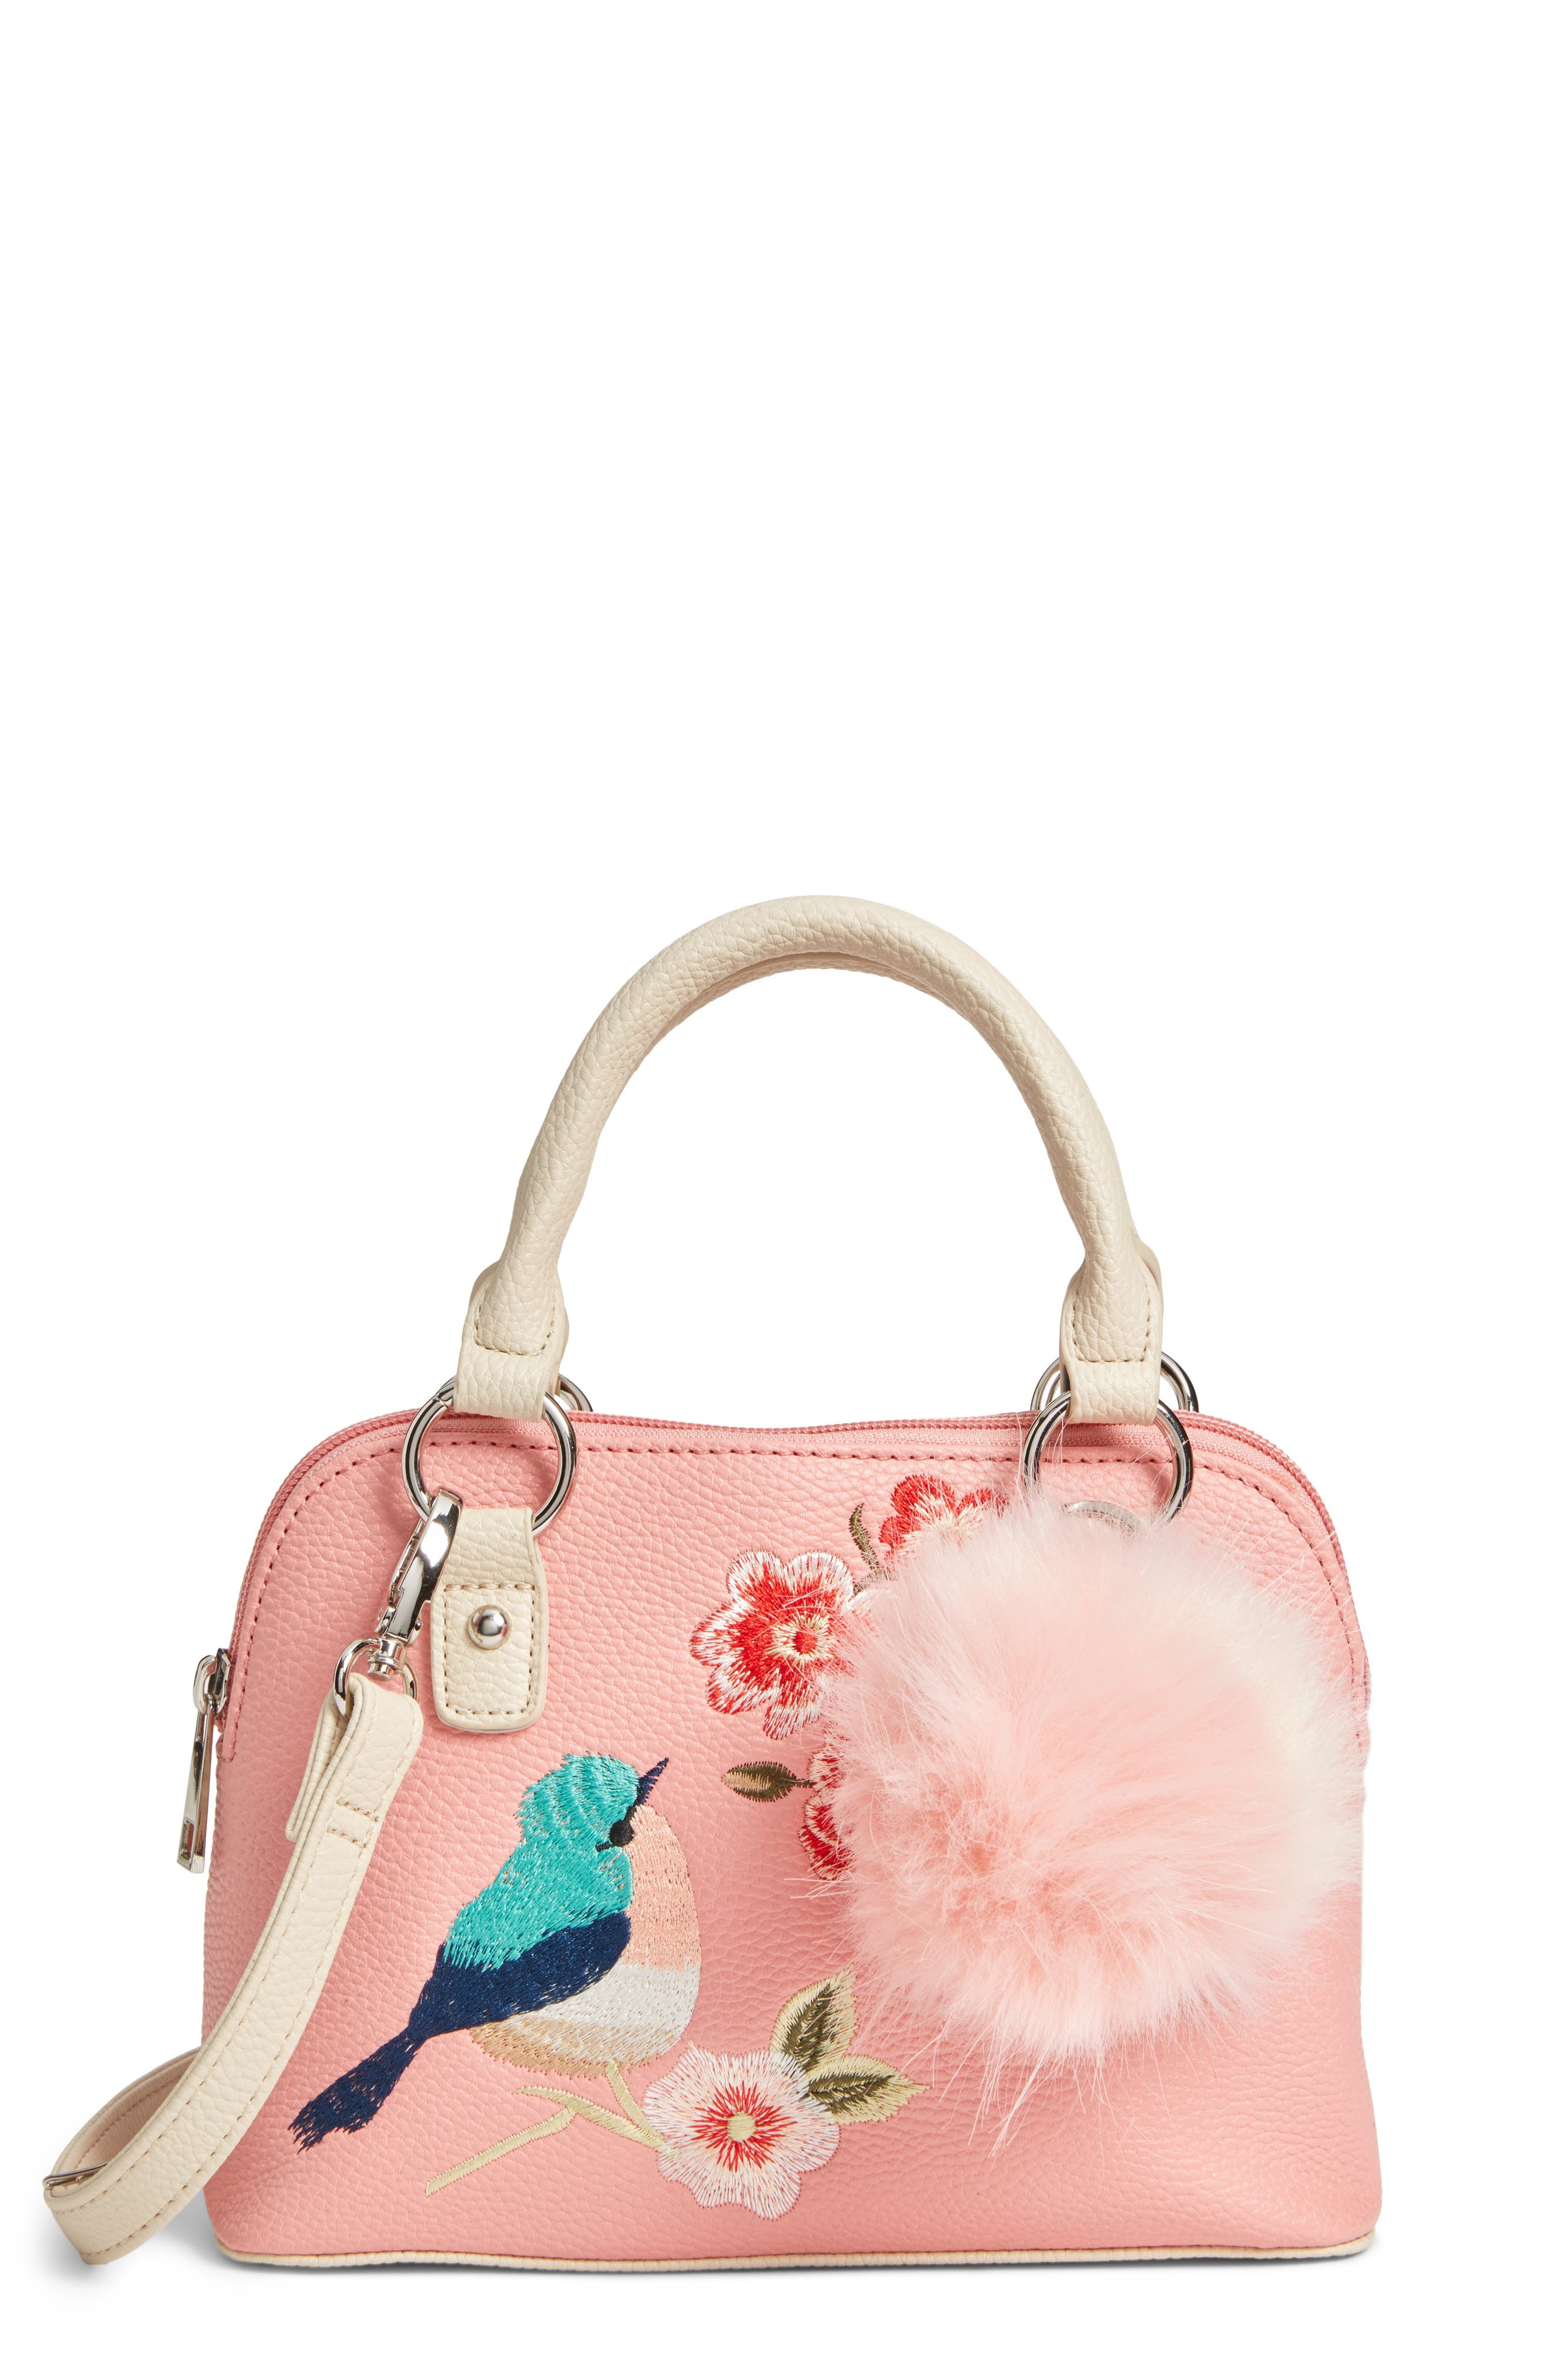 Embroidered Handbag,                             Main thumbnail 1, color,                             680